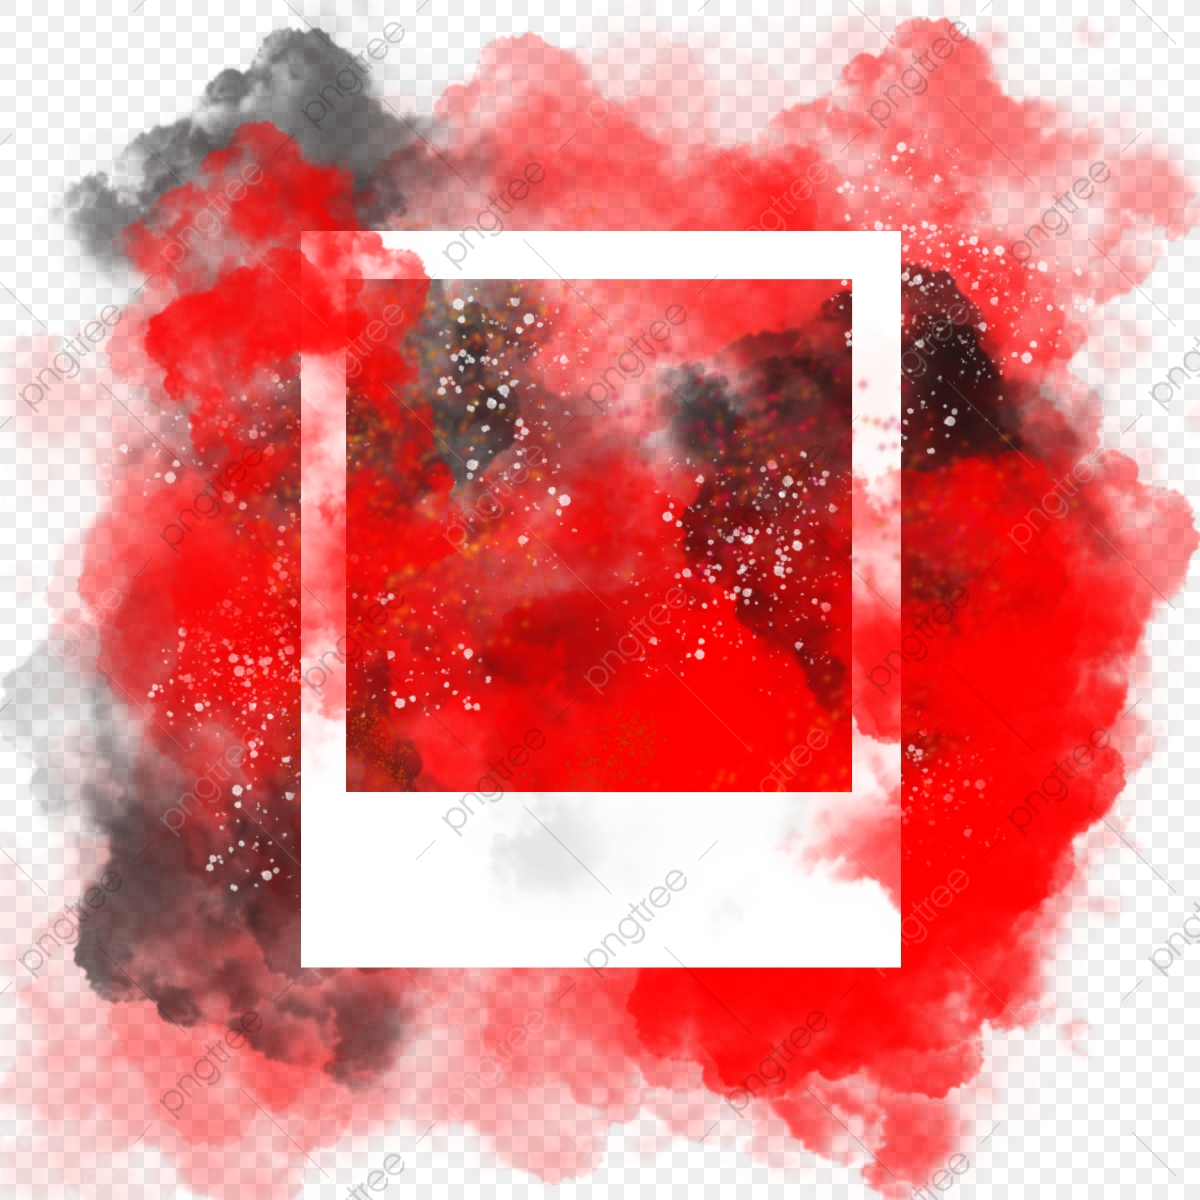 super cool red black smoke effect red smoke black effect red png transparent clipart image and psd file for free download https pngtree com freepng super cool red black smoke effect 5315810 html